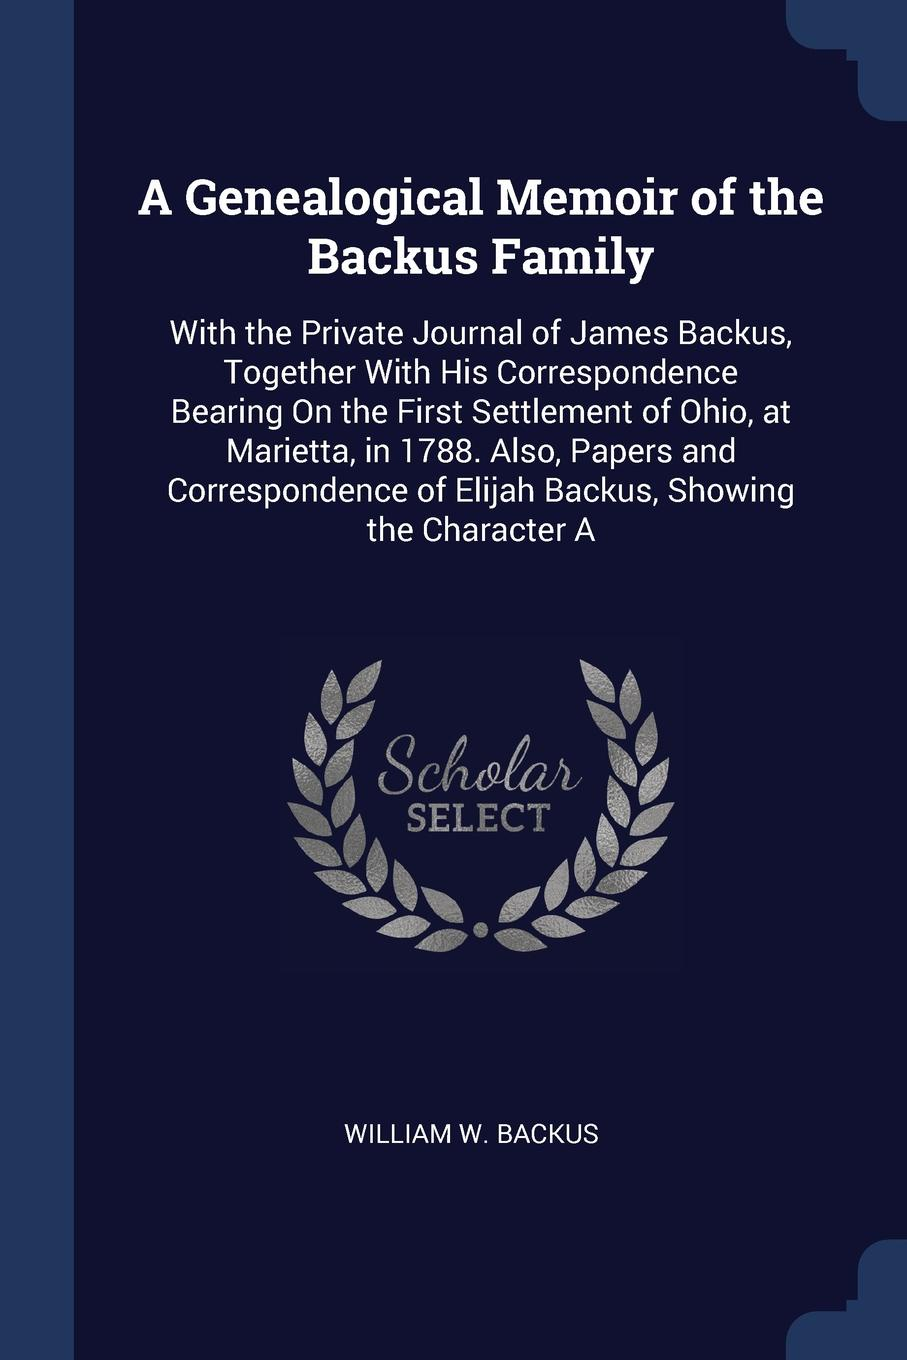 A Genealogical Memoir of the Backus Family. With the Private Journal of James Backus, Together With His Correspondence Bearing On the First Settlement of Ohio, at Marietta, in 1788. Also, Papers and Correspondence of Elijah Backus, Showing the Cha.... William W. Backus